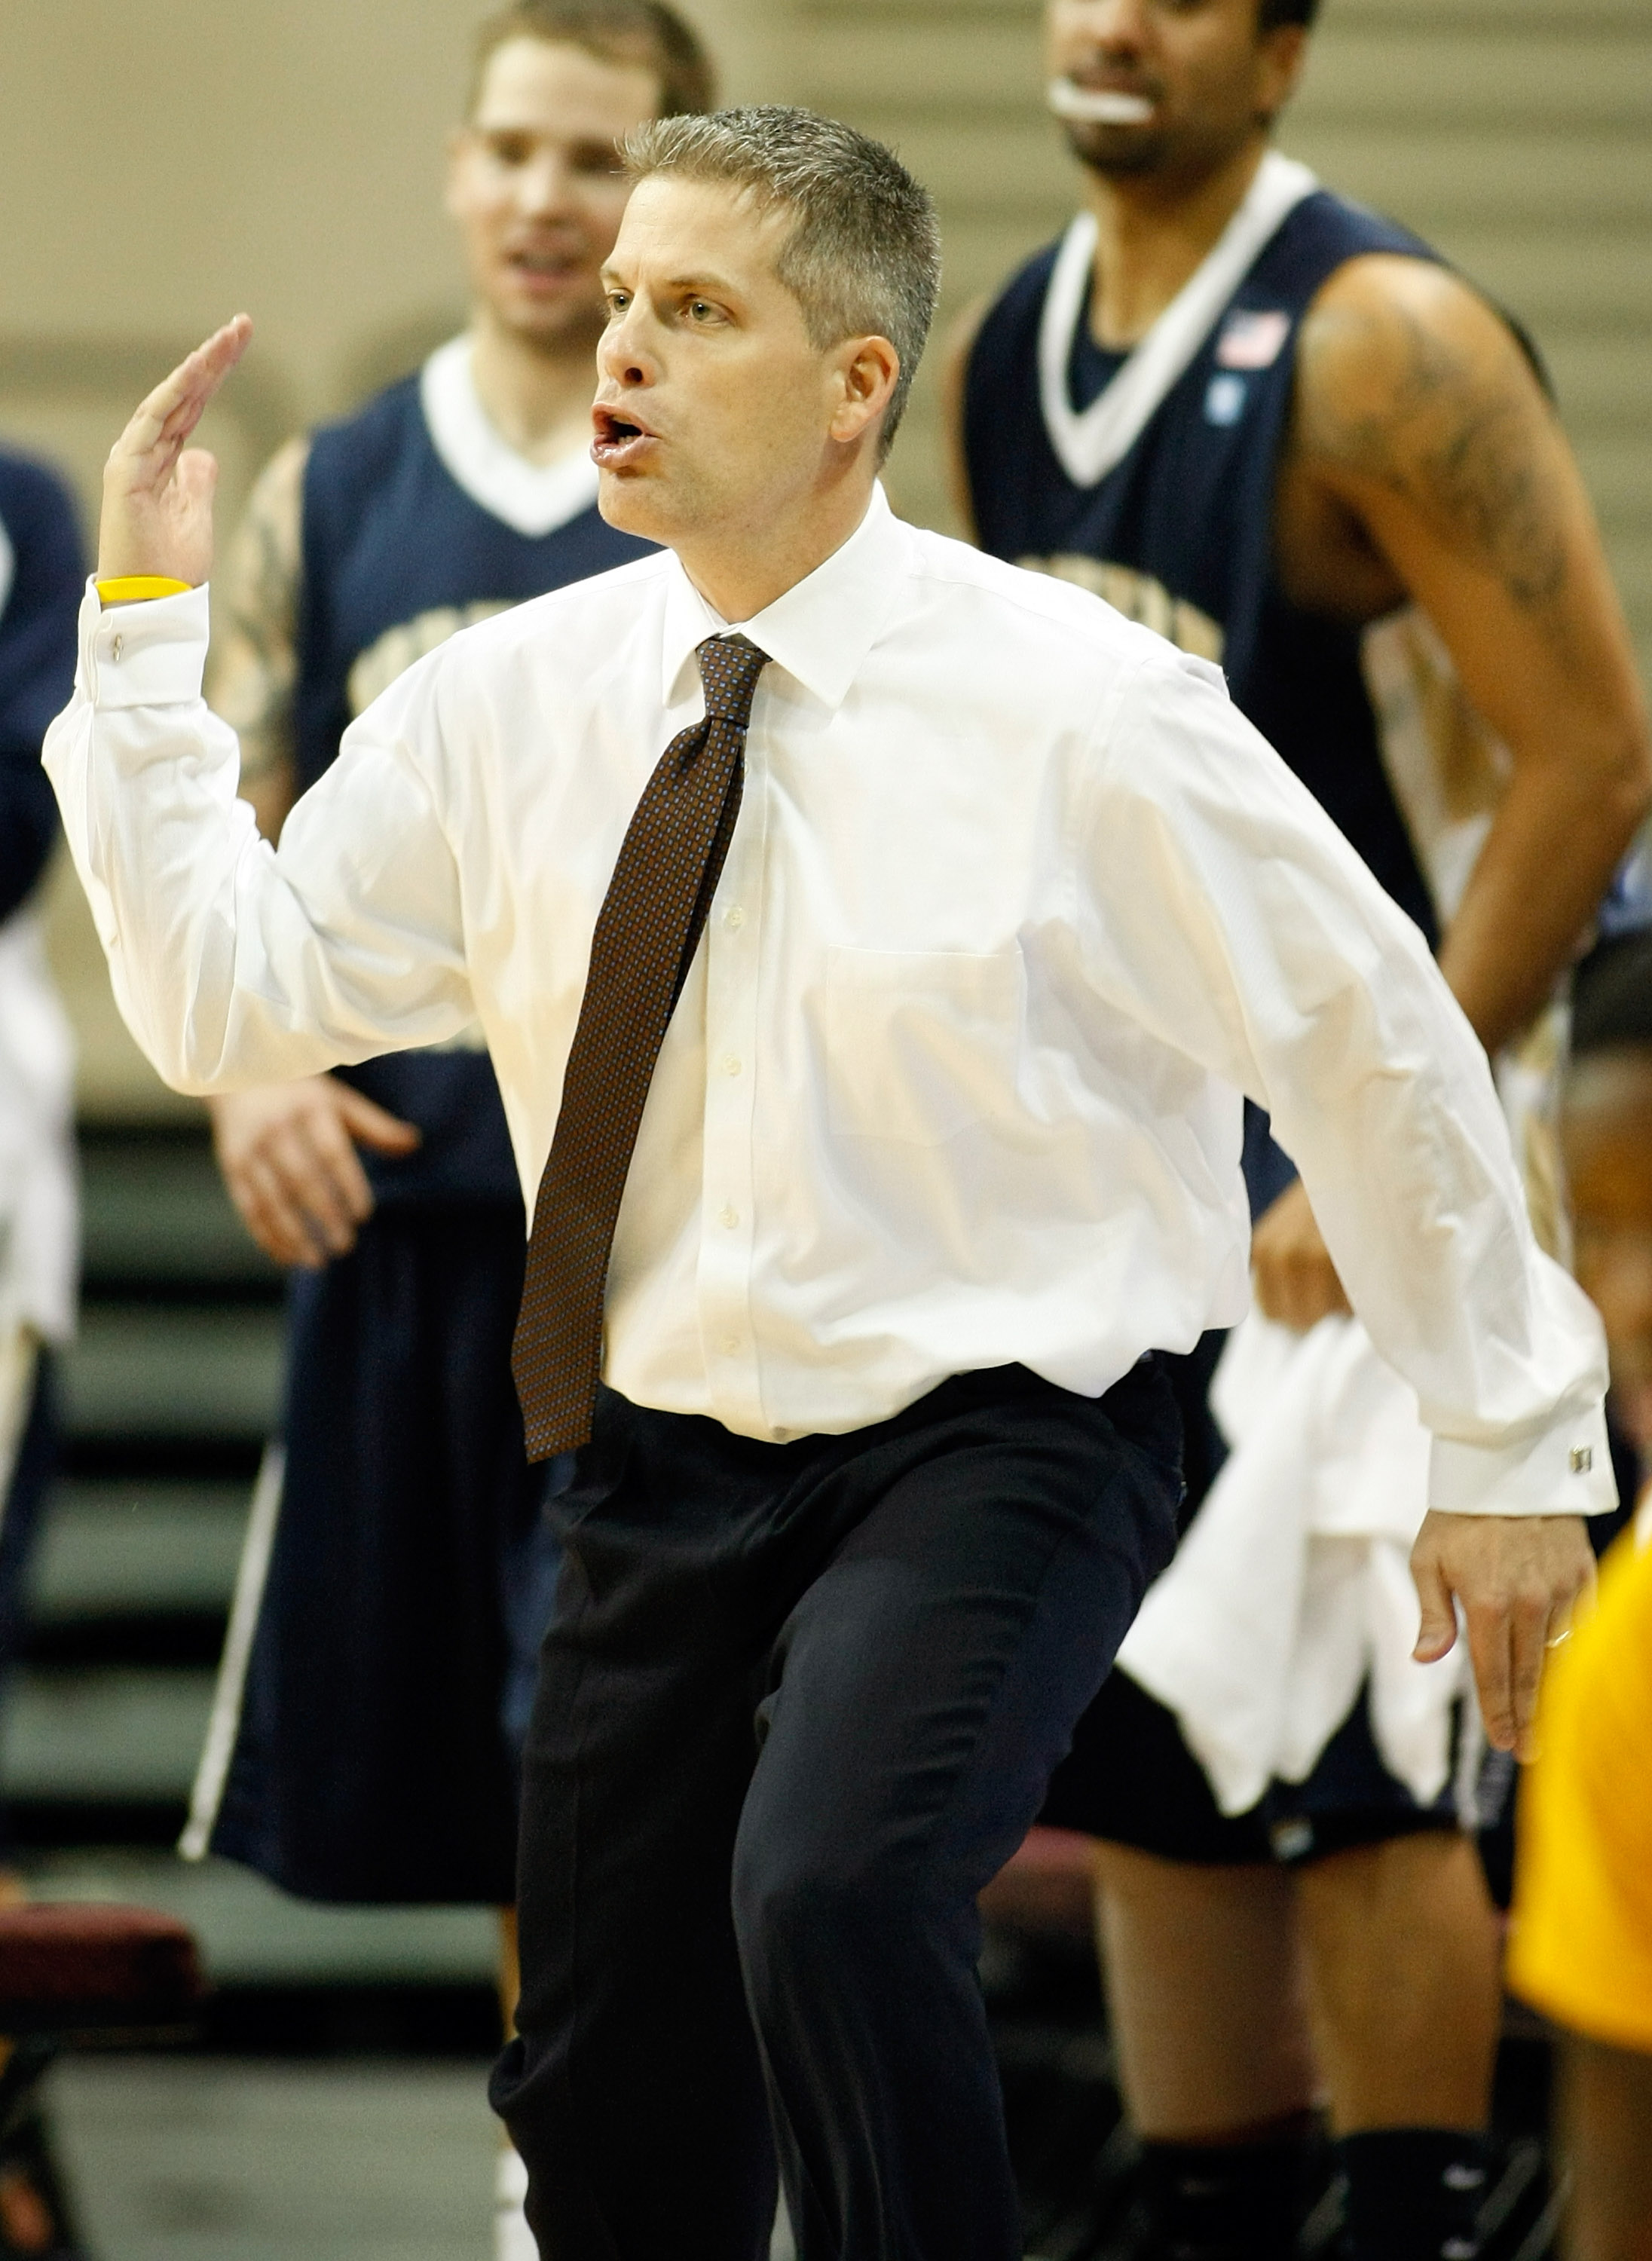 LAS VEGAS - NOVEMBER 27:  Head coach B.J. Hill of the Northern Colorado Bears gestures to his players as they take on the Bethune-Cookman Wildcats during the fourth round of the Las Vegas Invitational at The Orleans Arena November 27, 2010 in Las Vegas, N